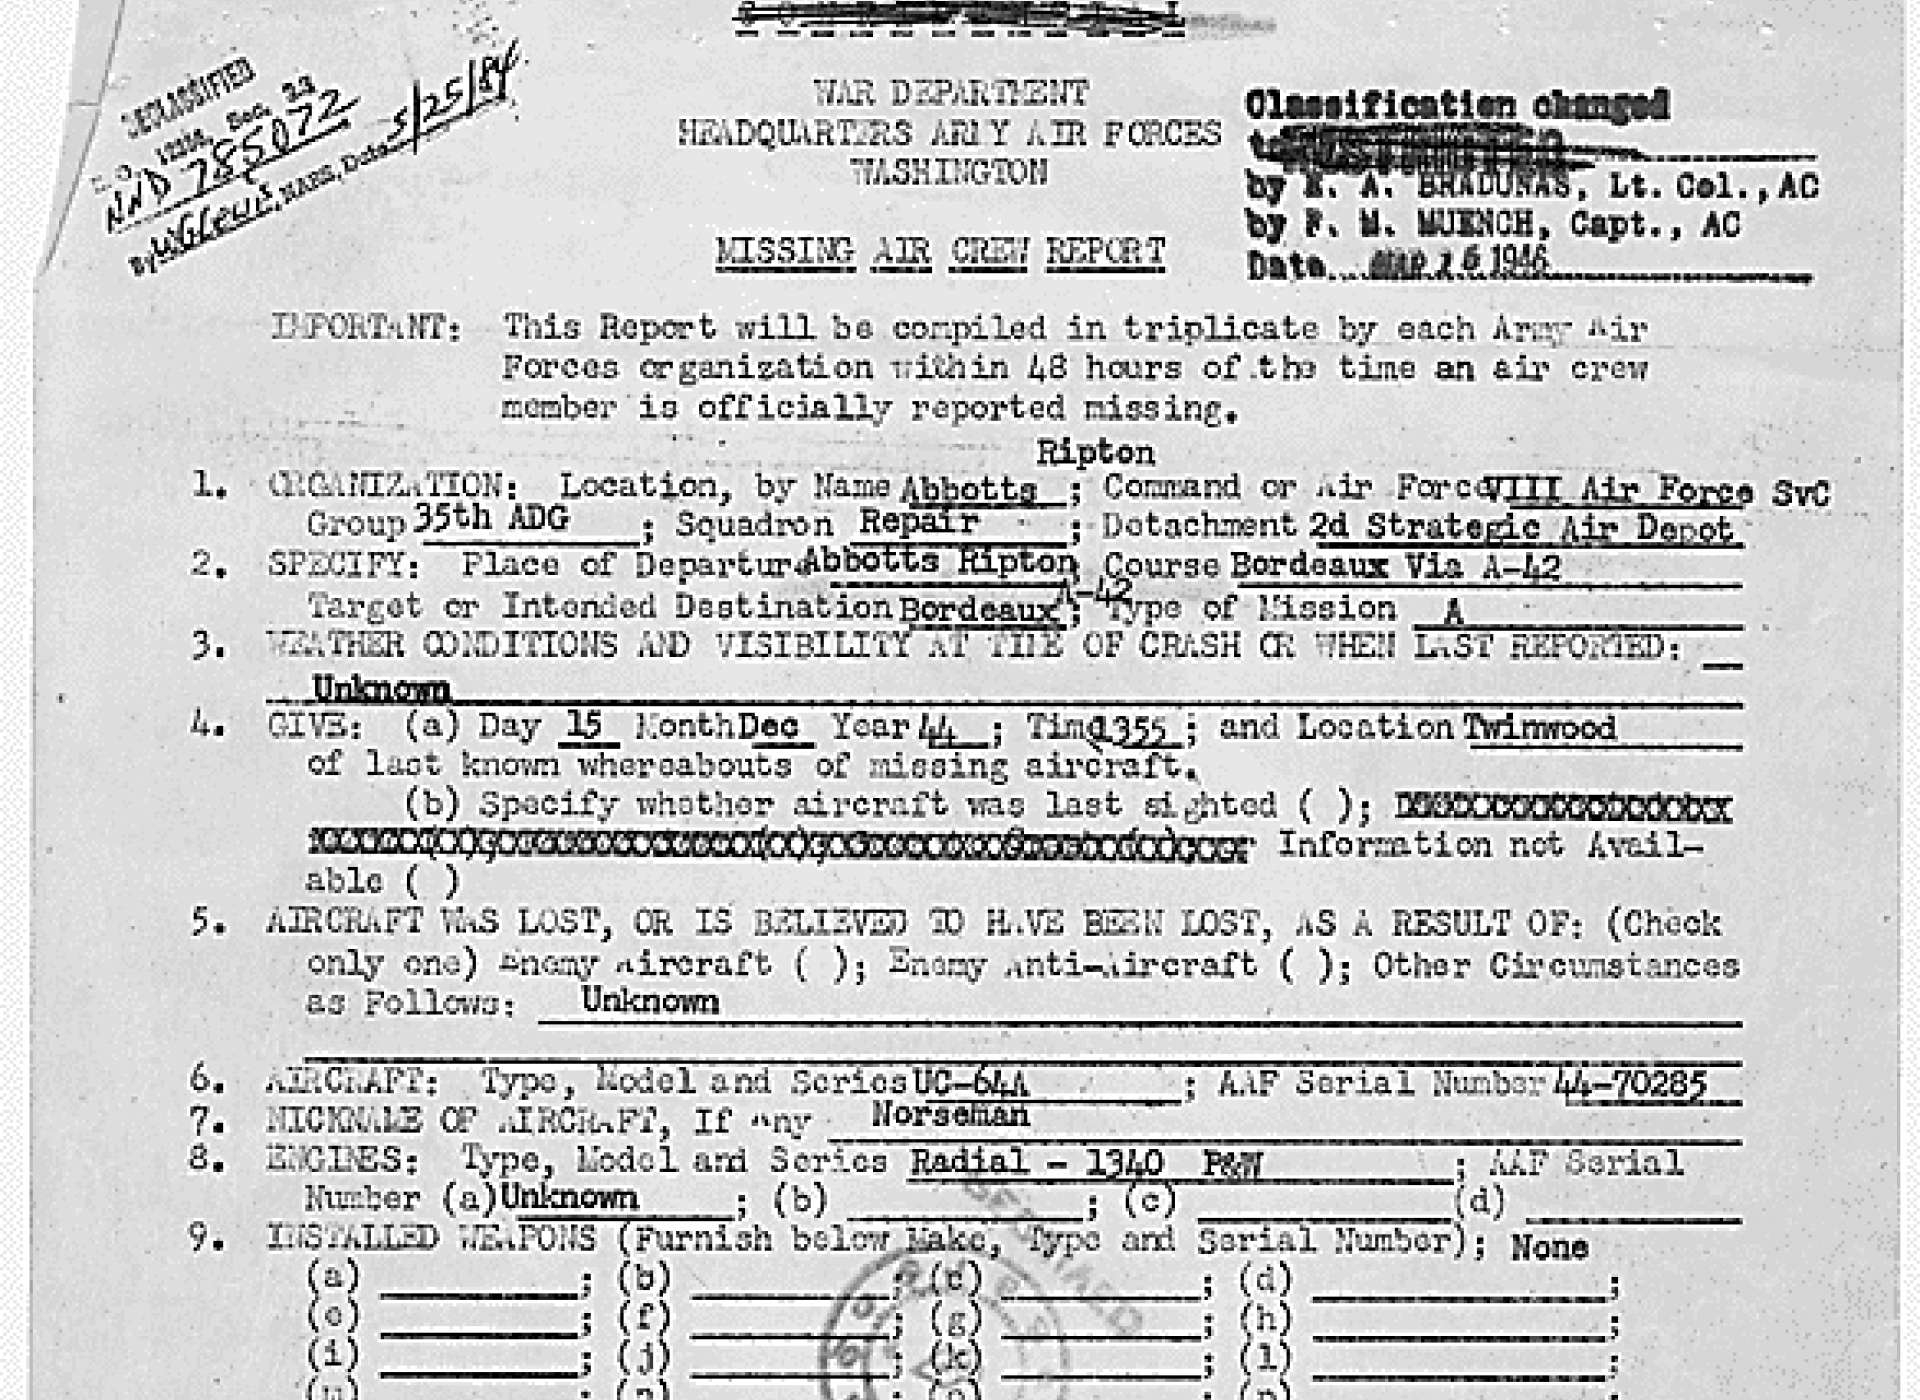 The top page from the Missing Air Crew Report, amended to add Miller and Baessell as passengers. Missing Air Crew Report No. 44-70285, the National Archives via Fold3.